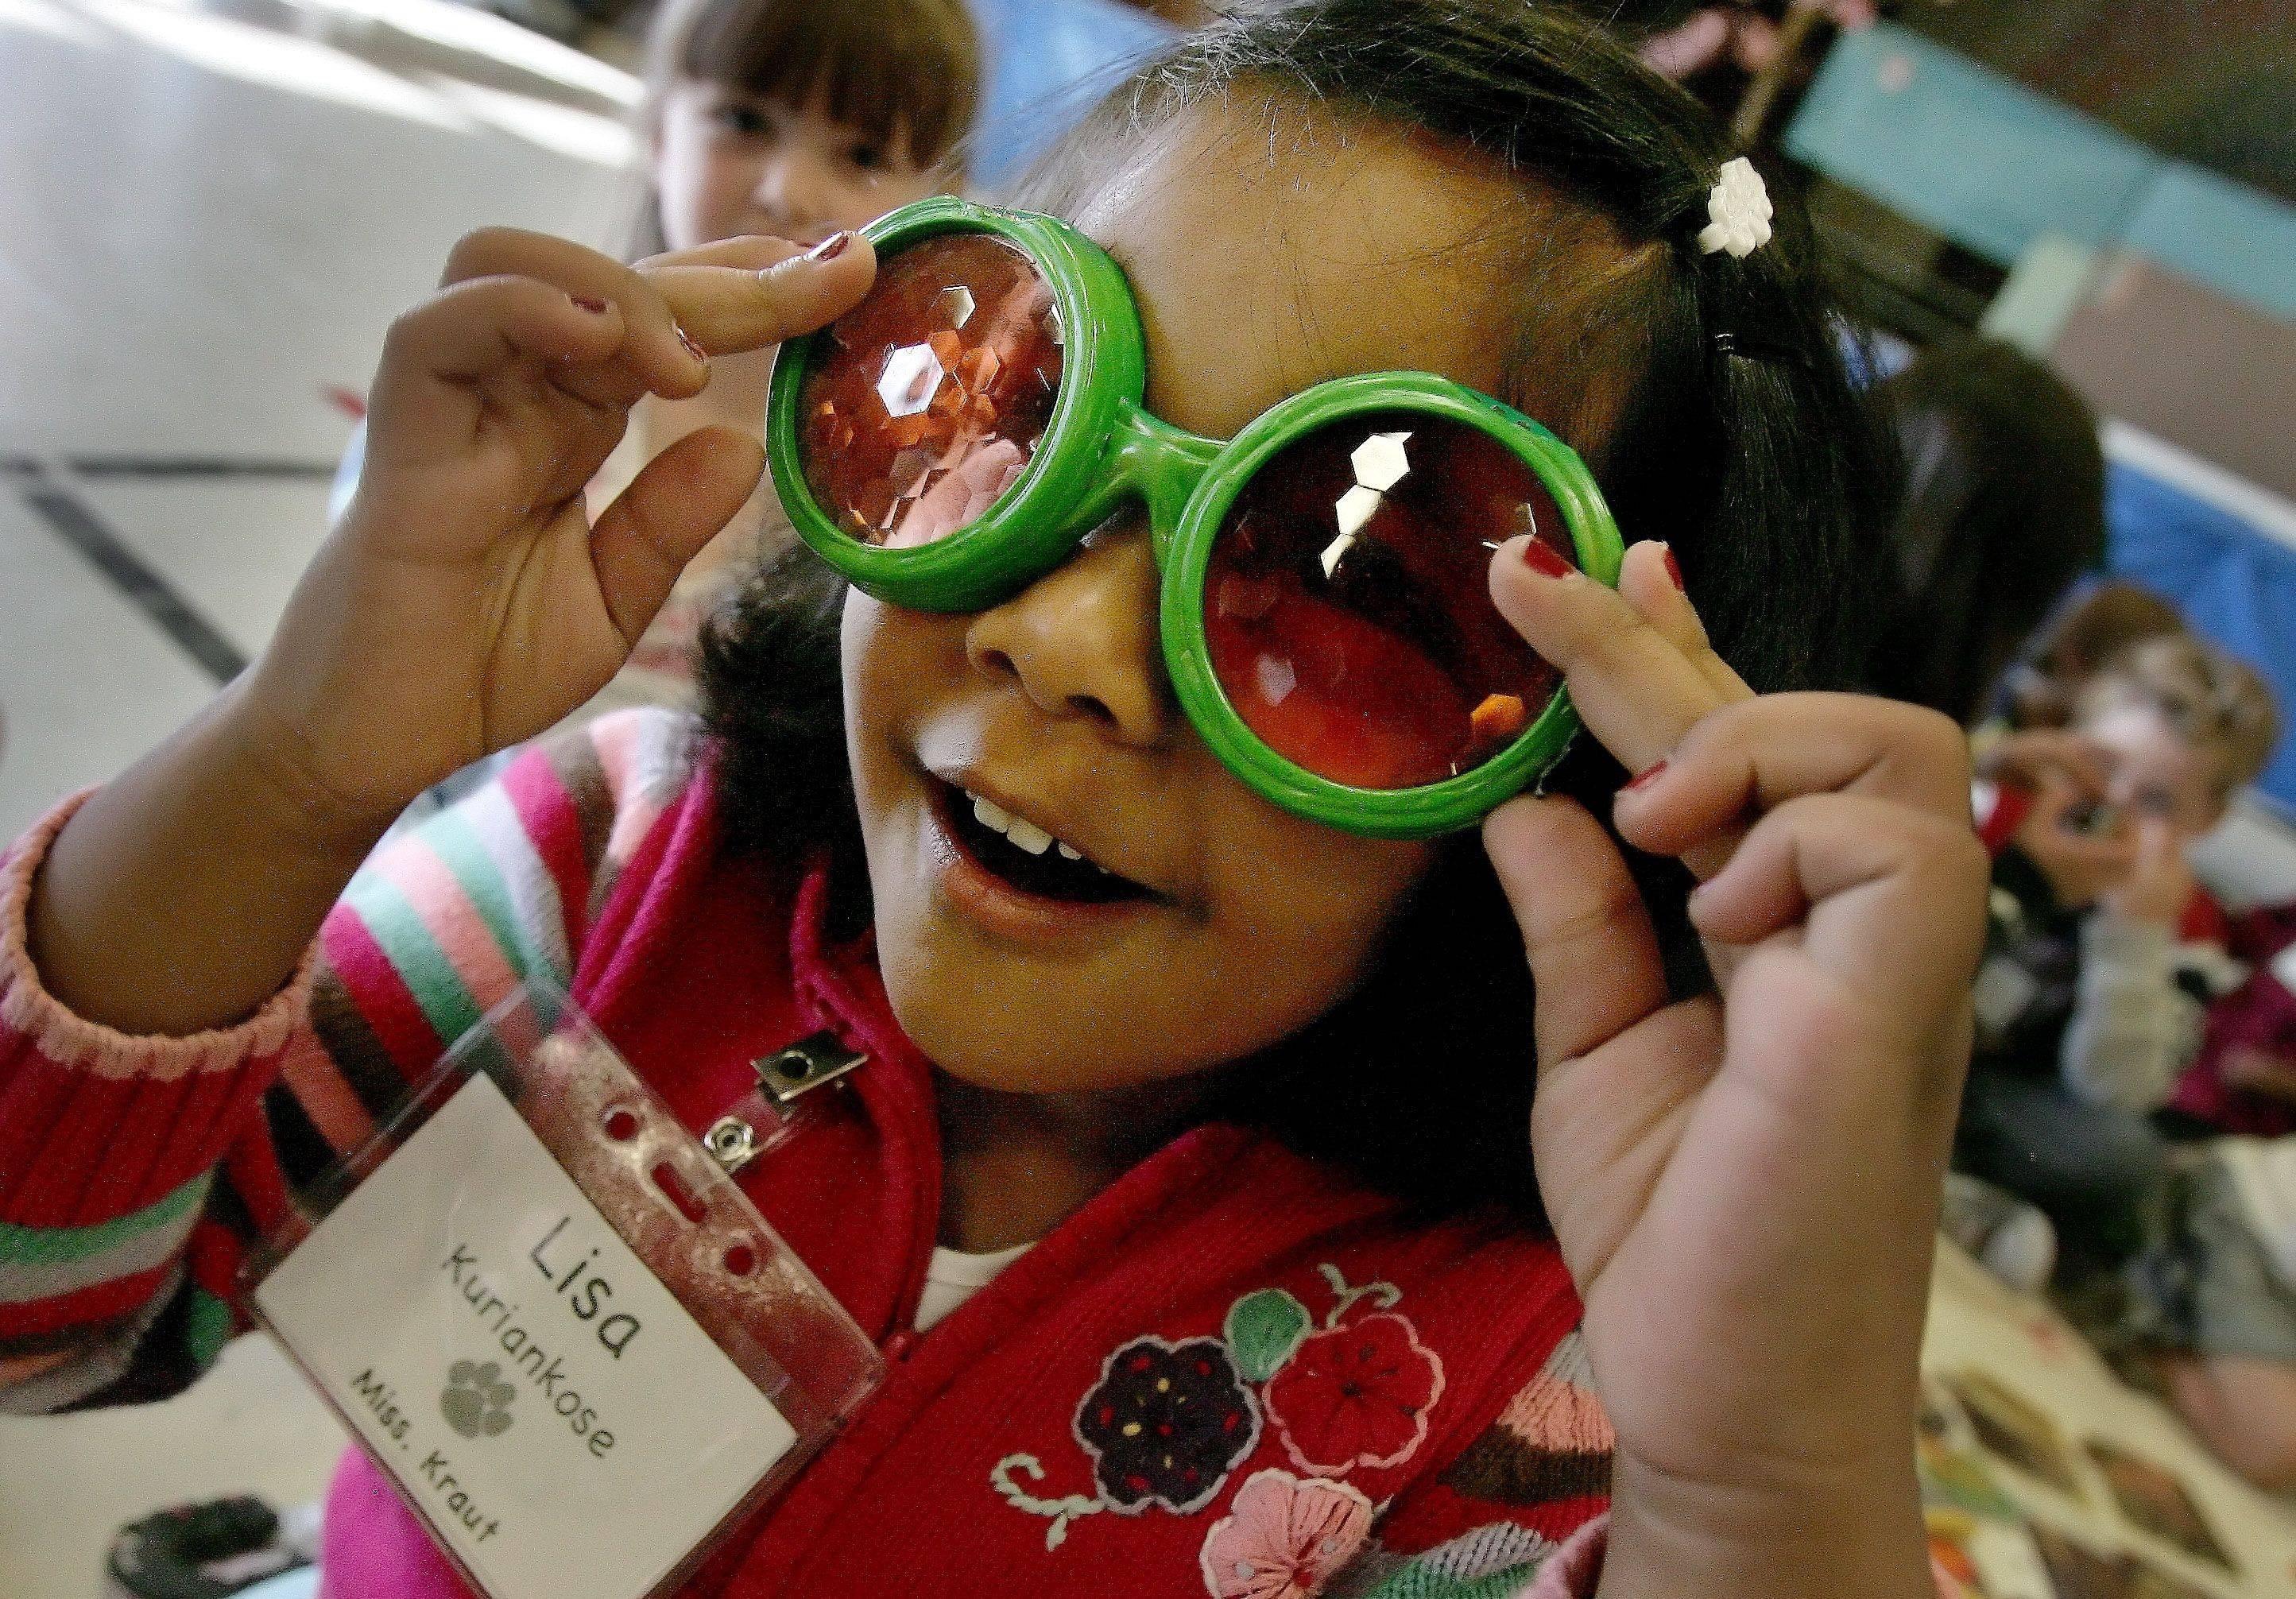 Lisa Kuriankose wears compound insect eye glasses as naturalist David Stokes talks to kindergarten students about bugs and insects Tuesday at Woodland Primary School in Gurnee.